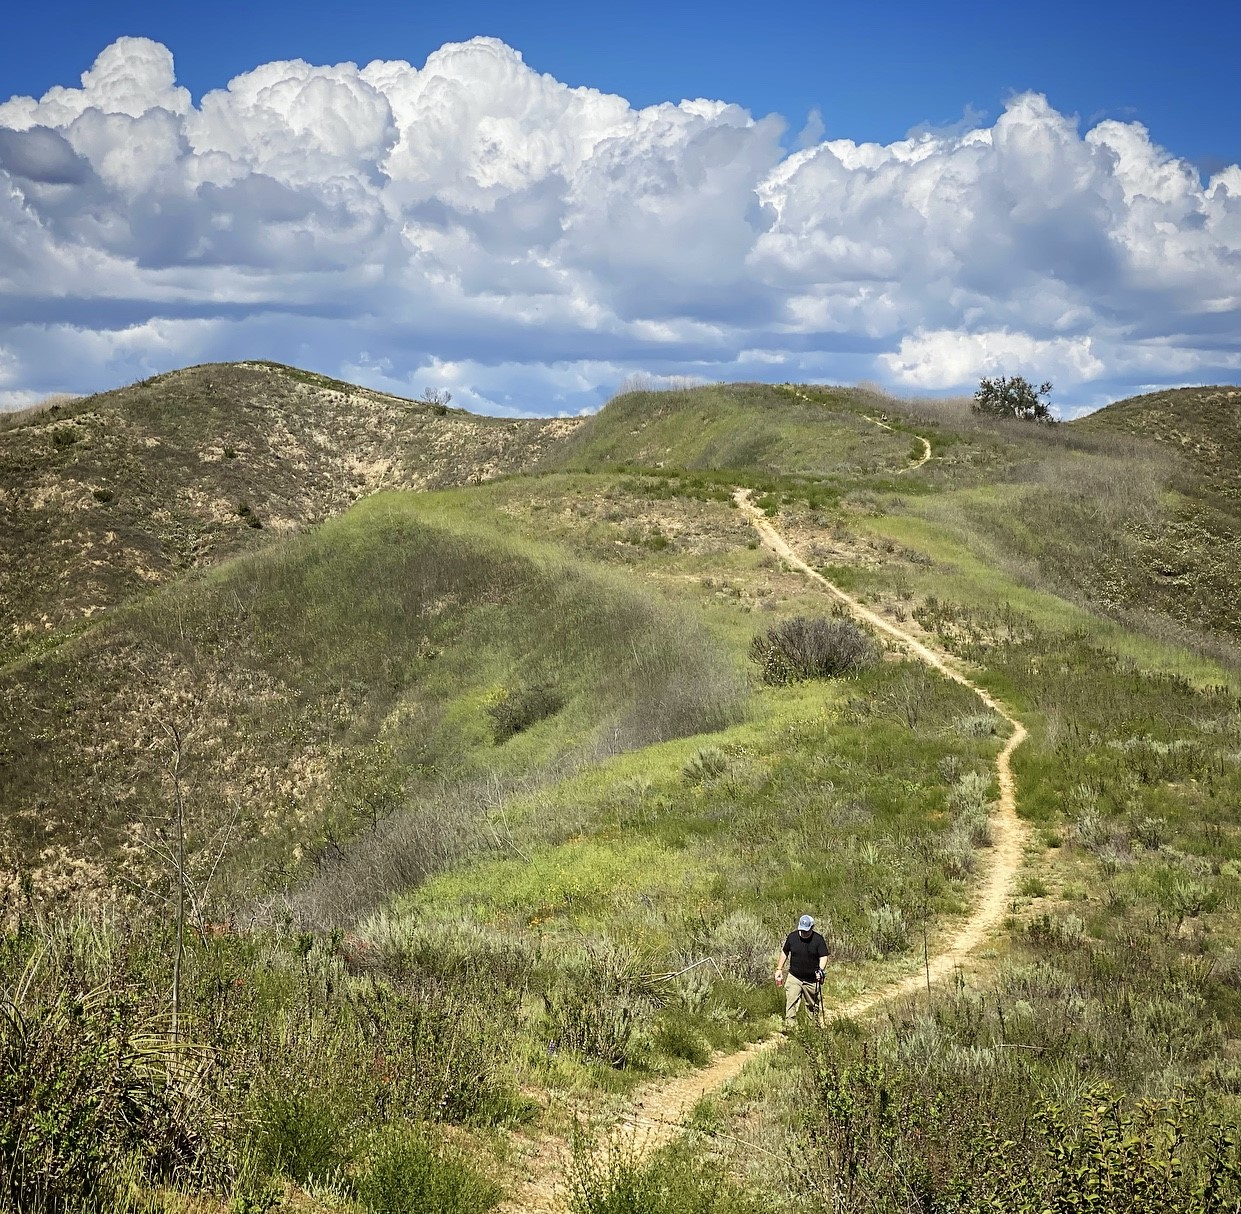 Hiker in Santa Monica Mountains